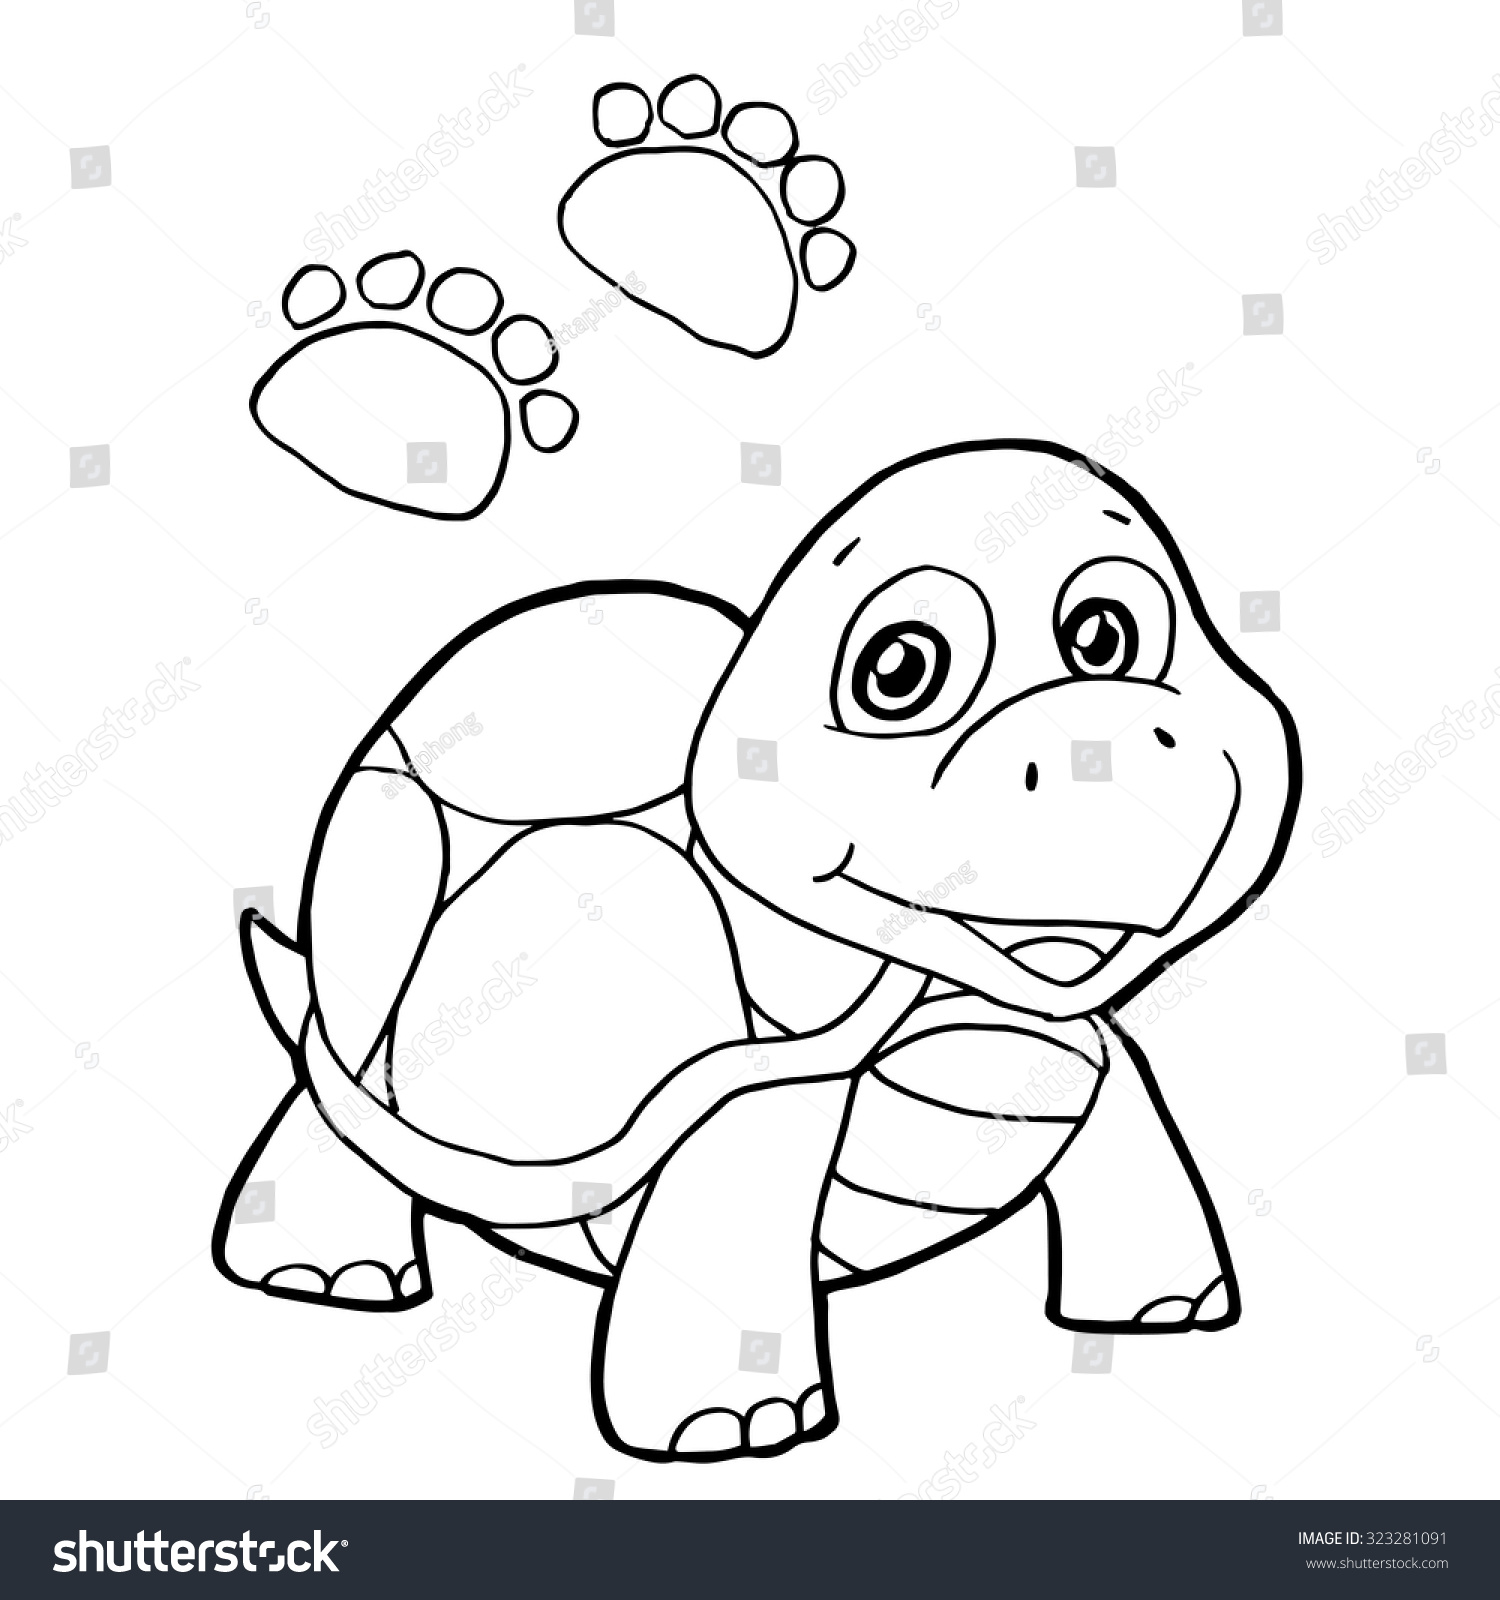 paw print turtle coloring page vector stock vector 323281091